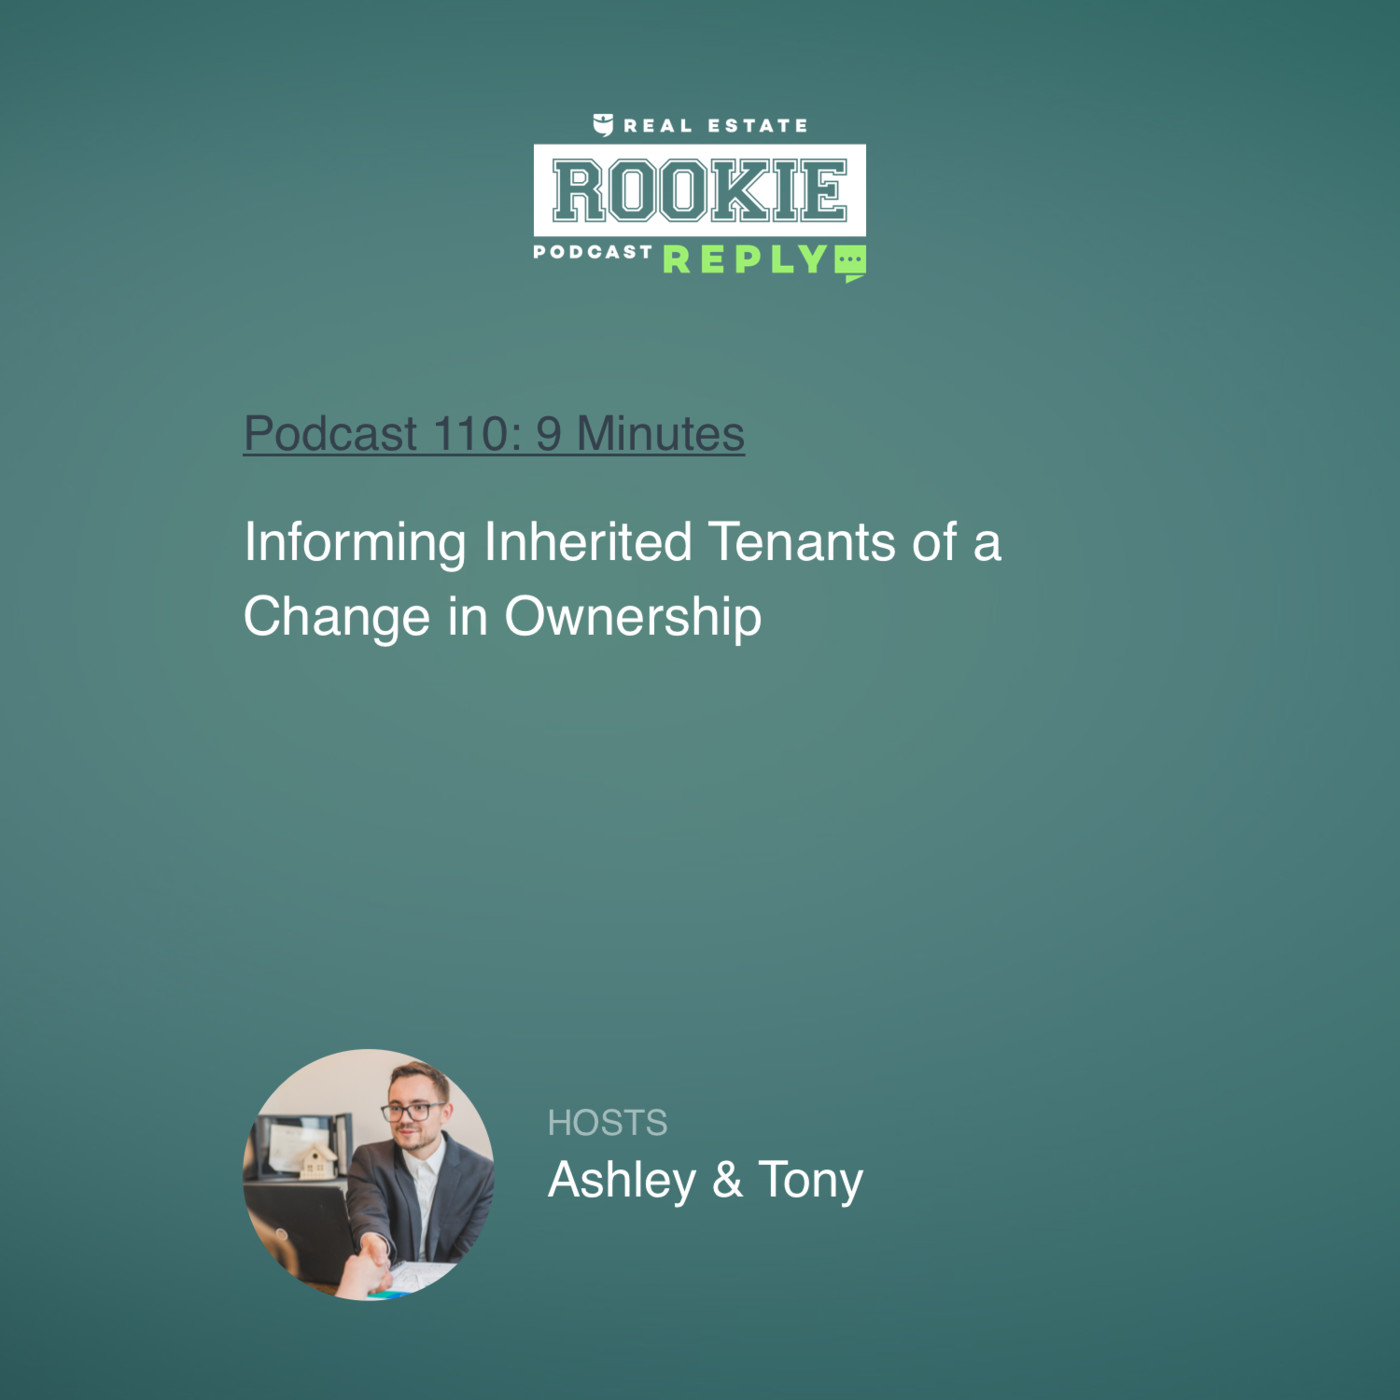 Rookie Reply: Informing Inherited Tenants of a Change in Ownership